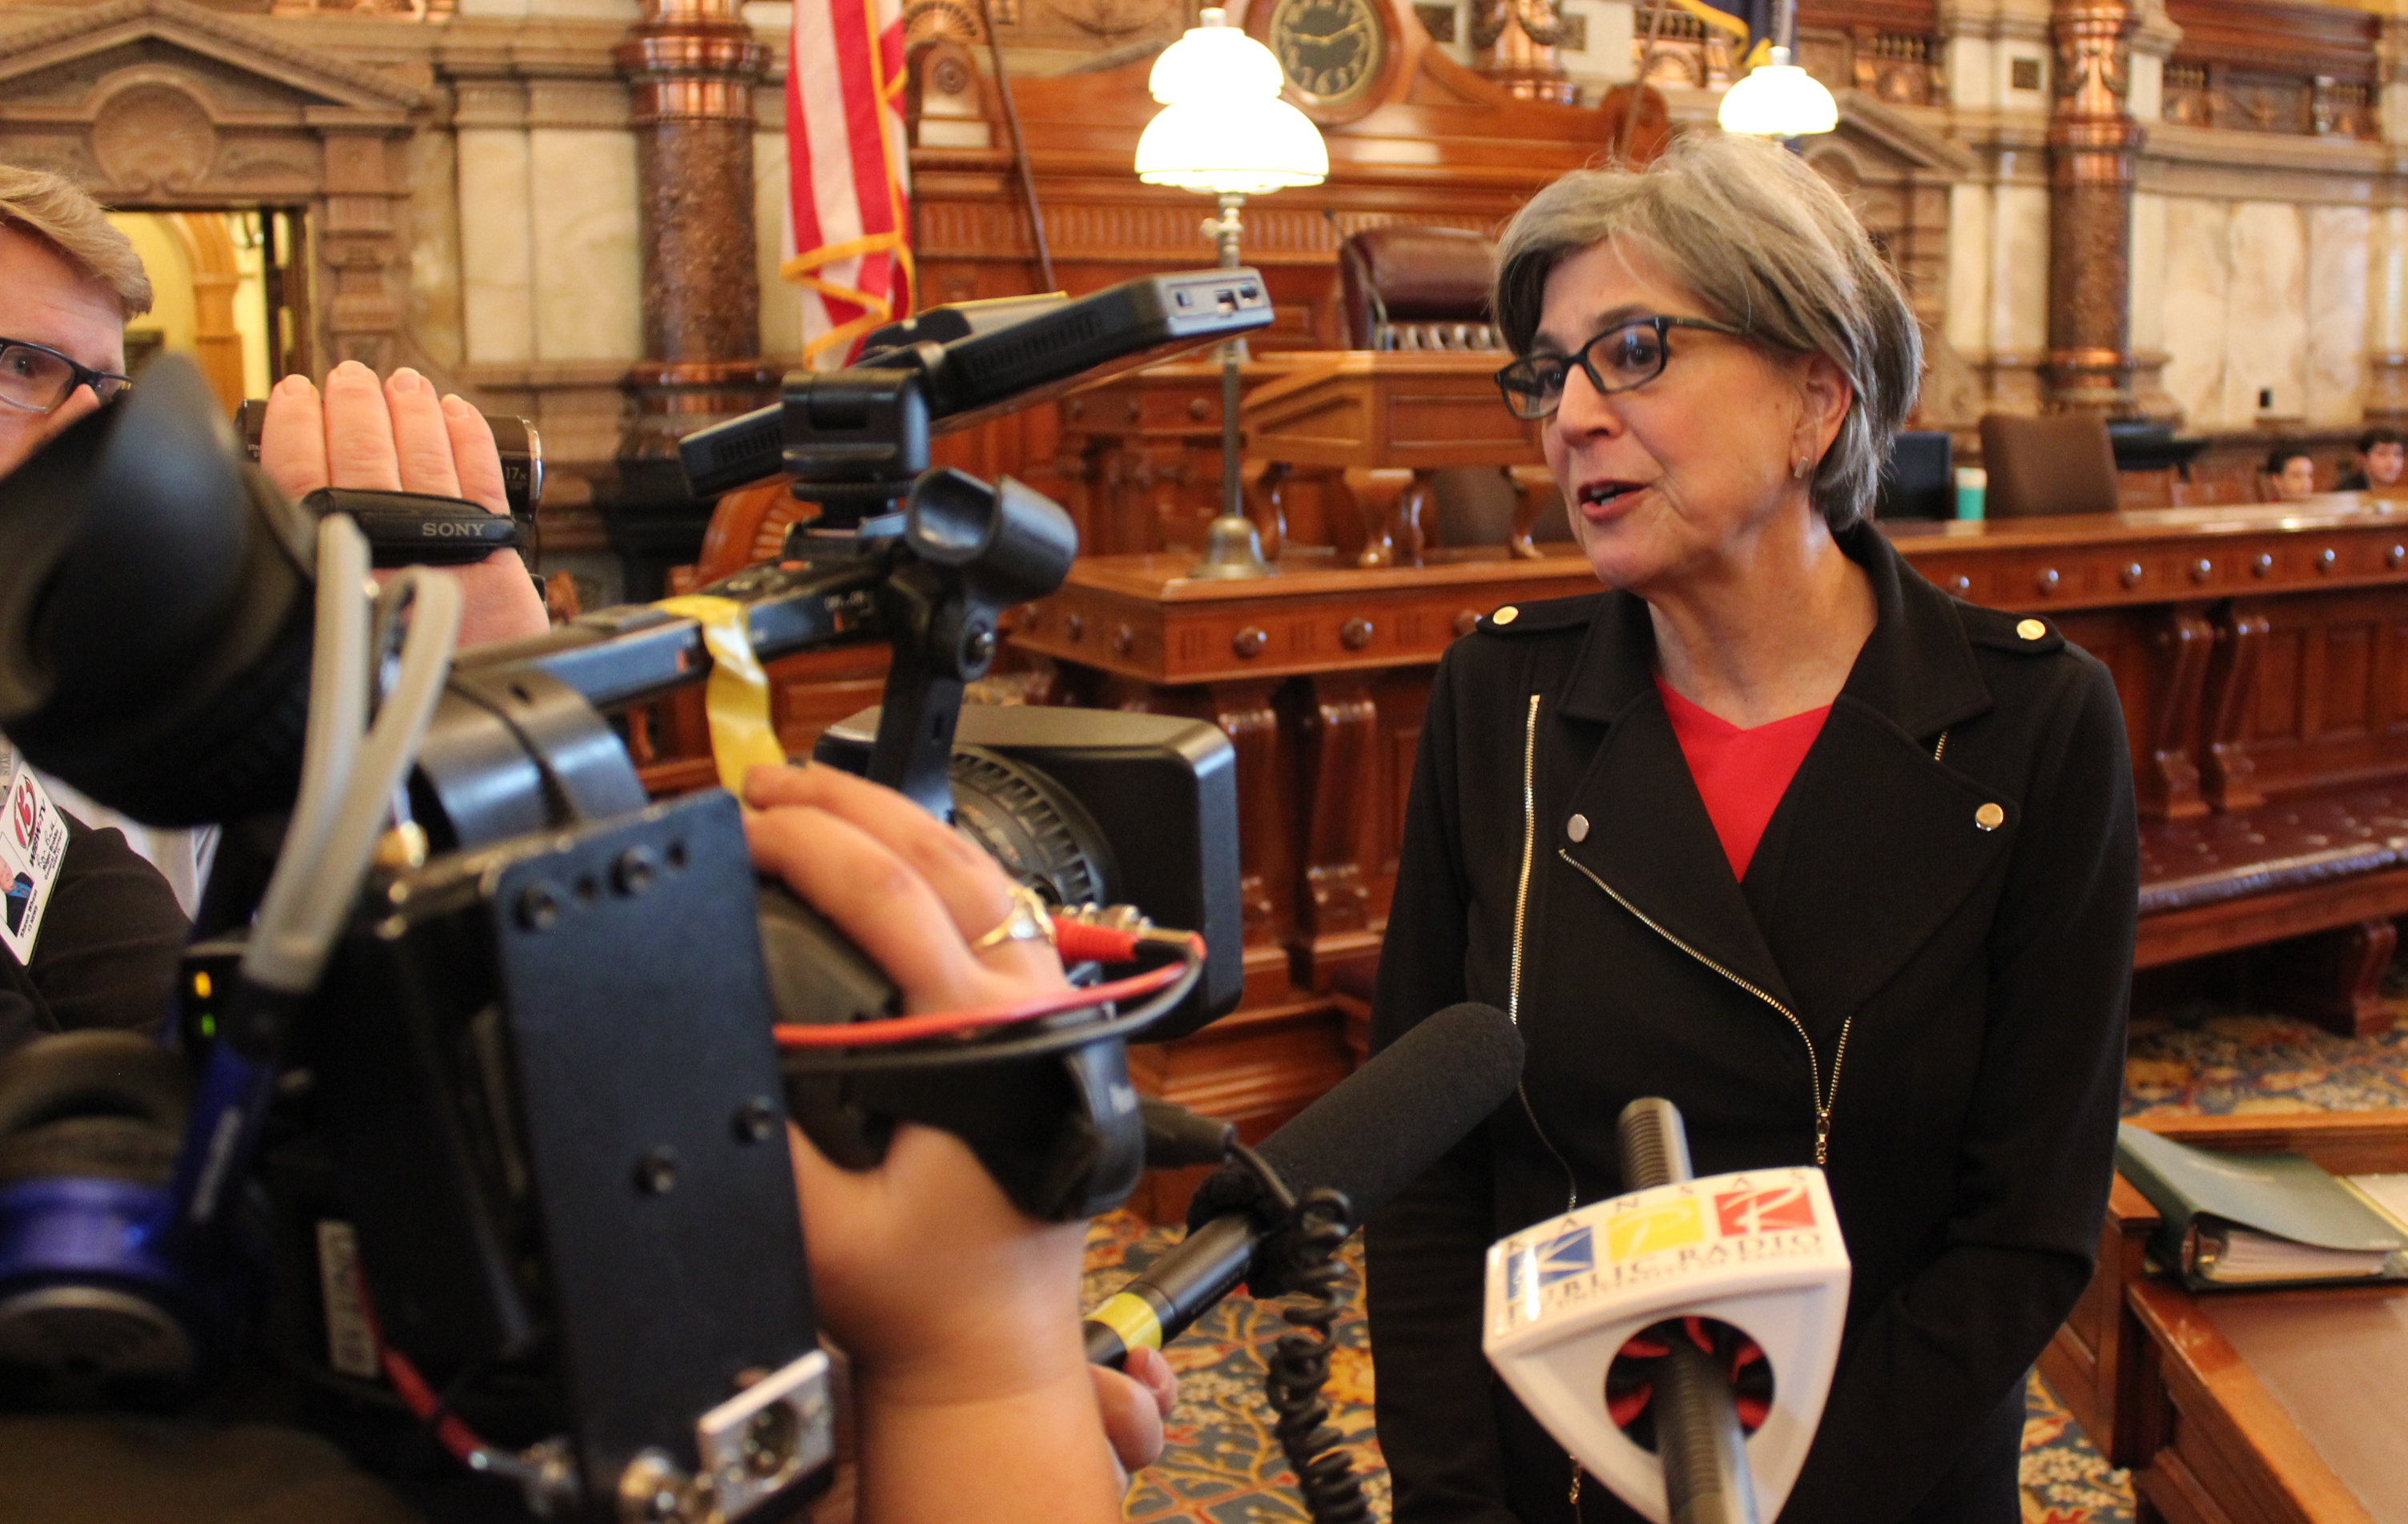 Senate President Susan Wagle speaking to reporters after the debate was delayed. (Photo by Stephen Koranda)